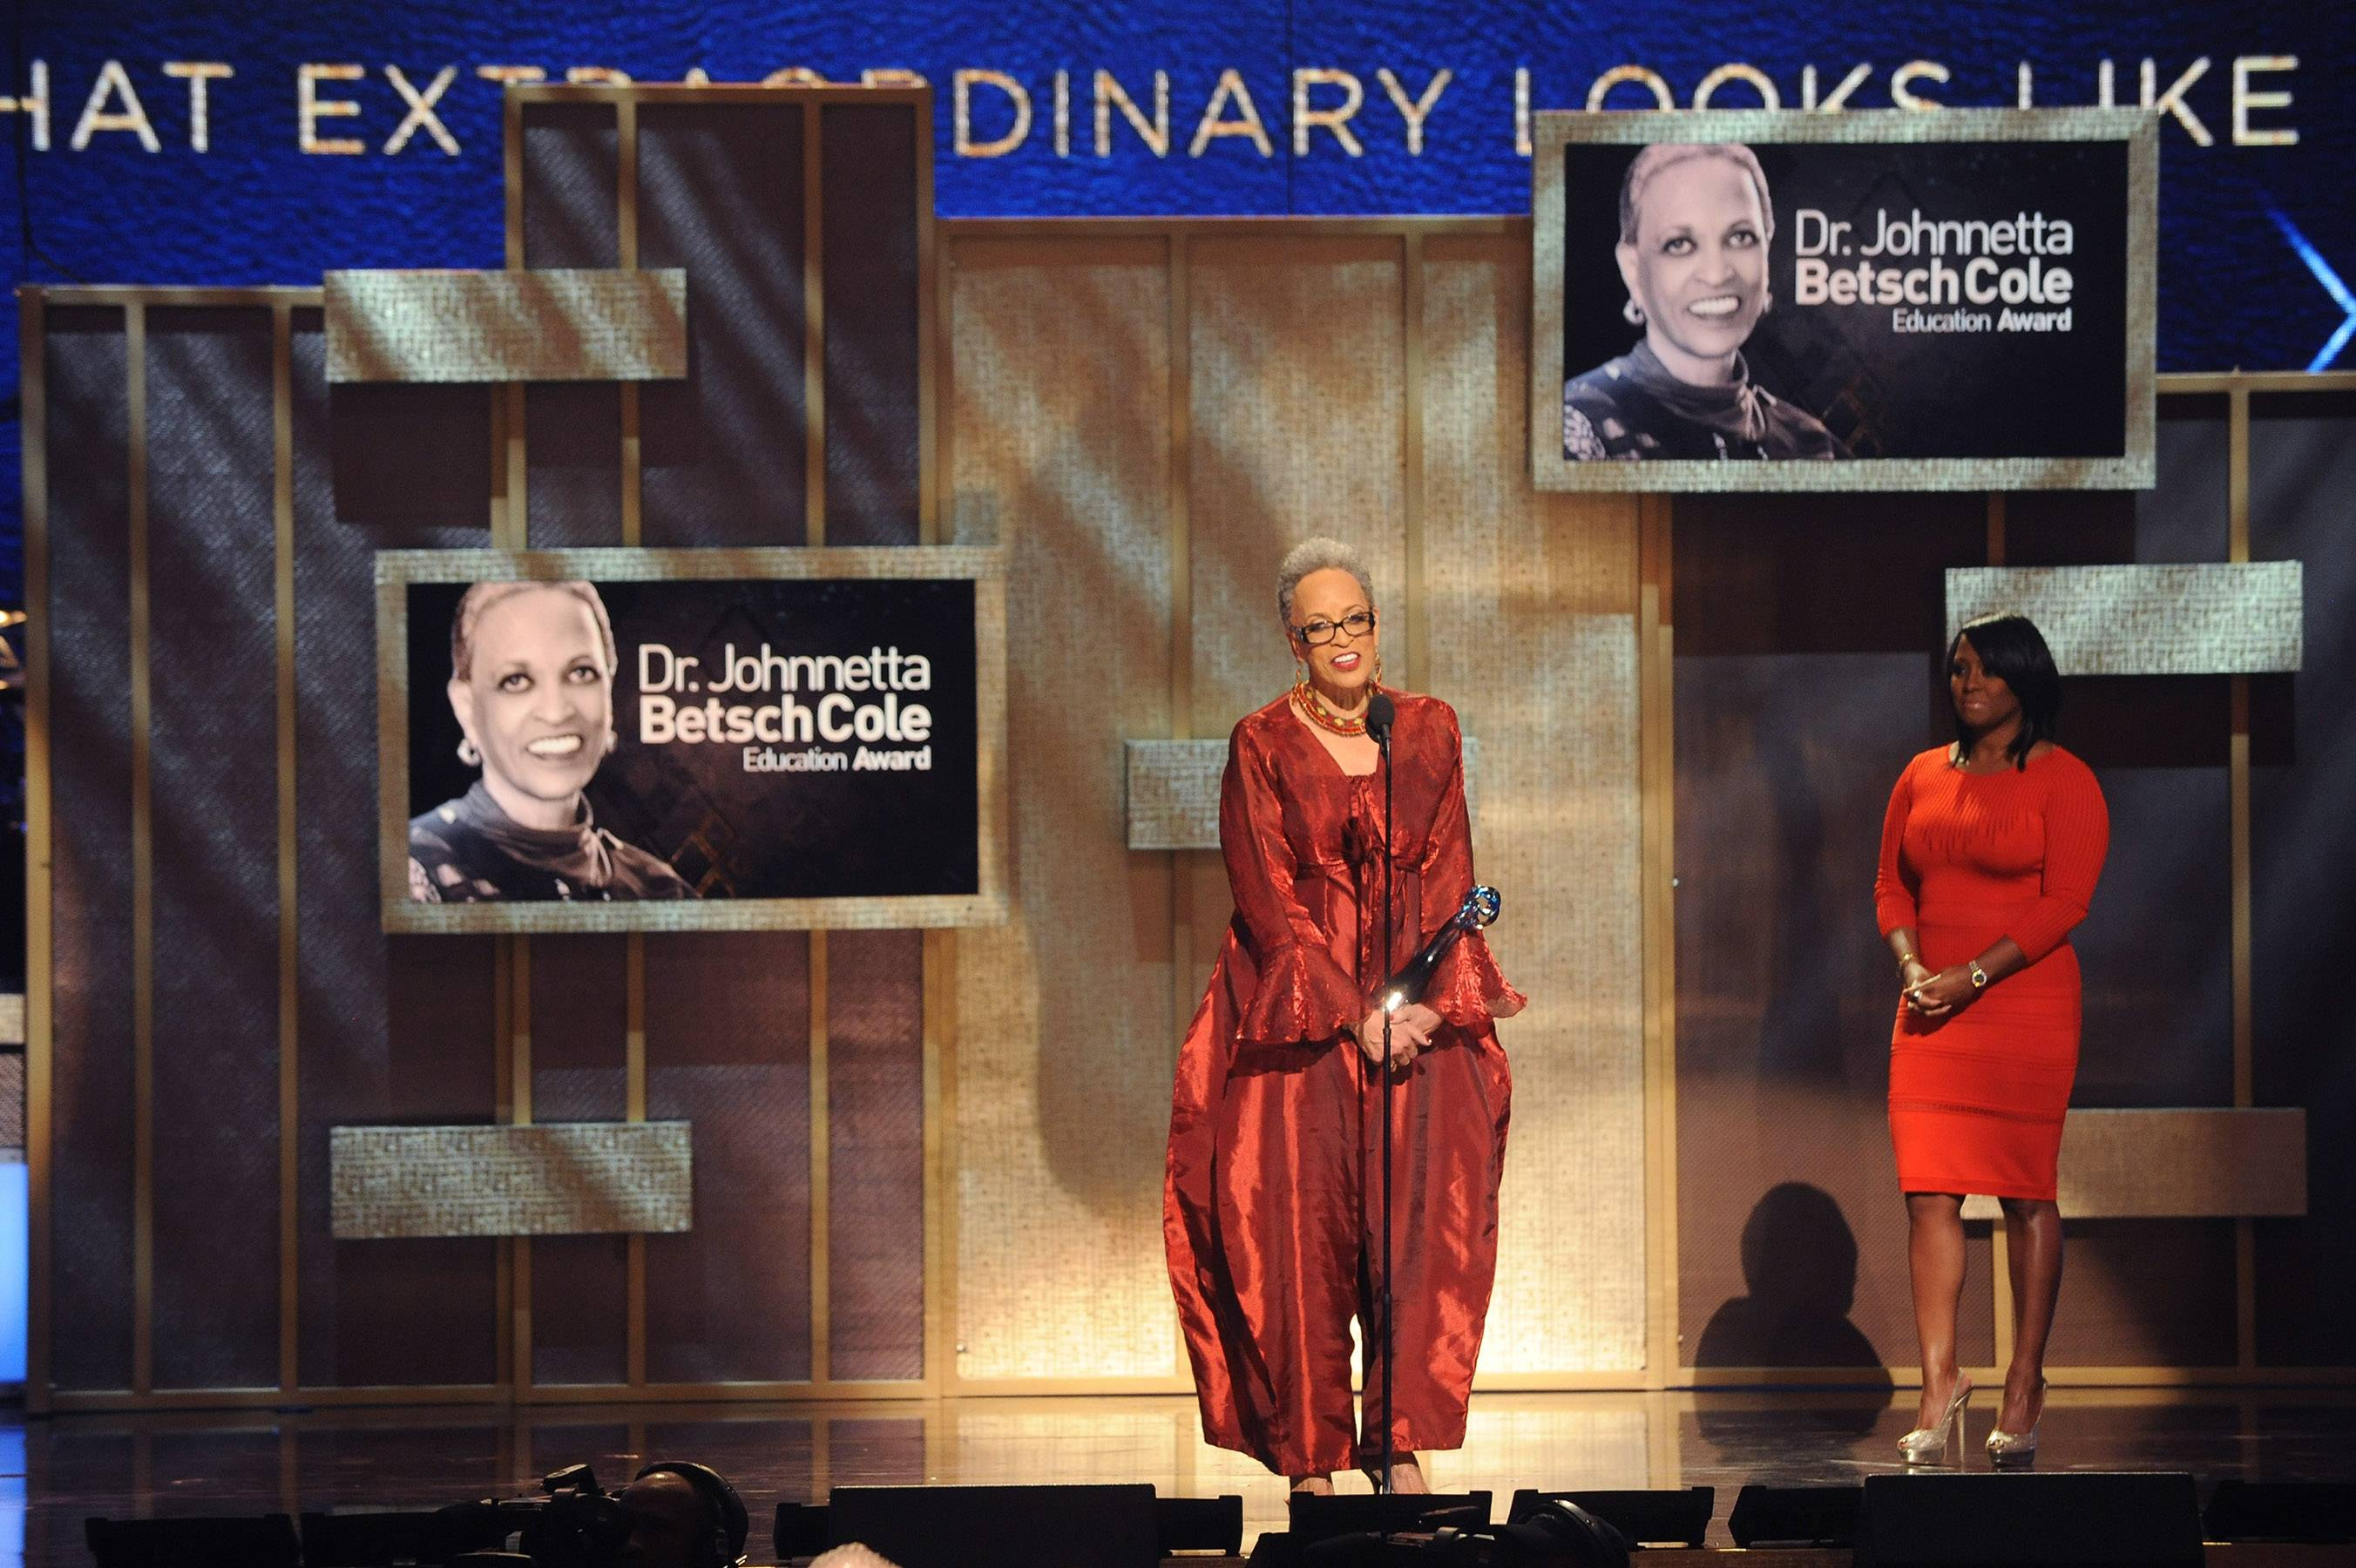 Dr. Johnnetta Betsch Cole Accepts Education Award - Dr. Johnnetta B. Cole accepted the Education Award during the 2015 BET Honors. She became the first female president of Spelman College and her other accolades include working as a museum director, educator and anthropologist.(Photo: Brad Barket/BET/Getty Images for BET)